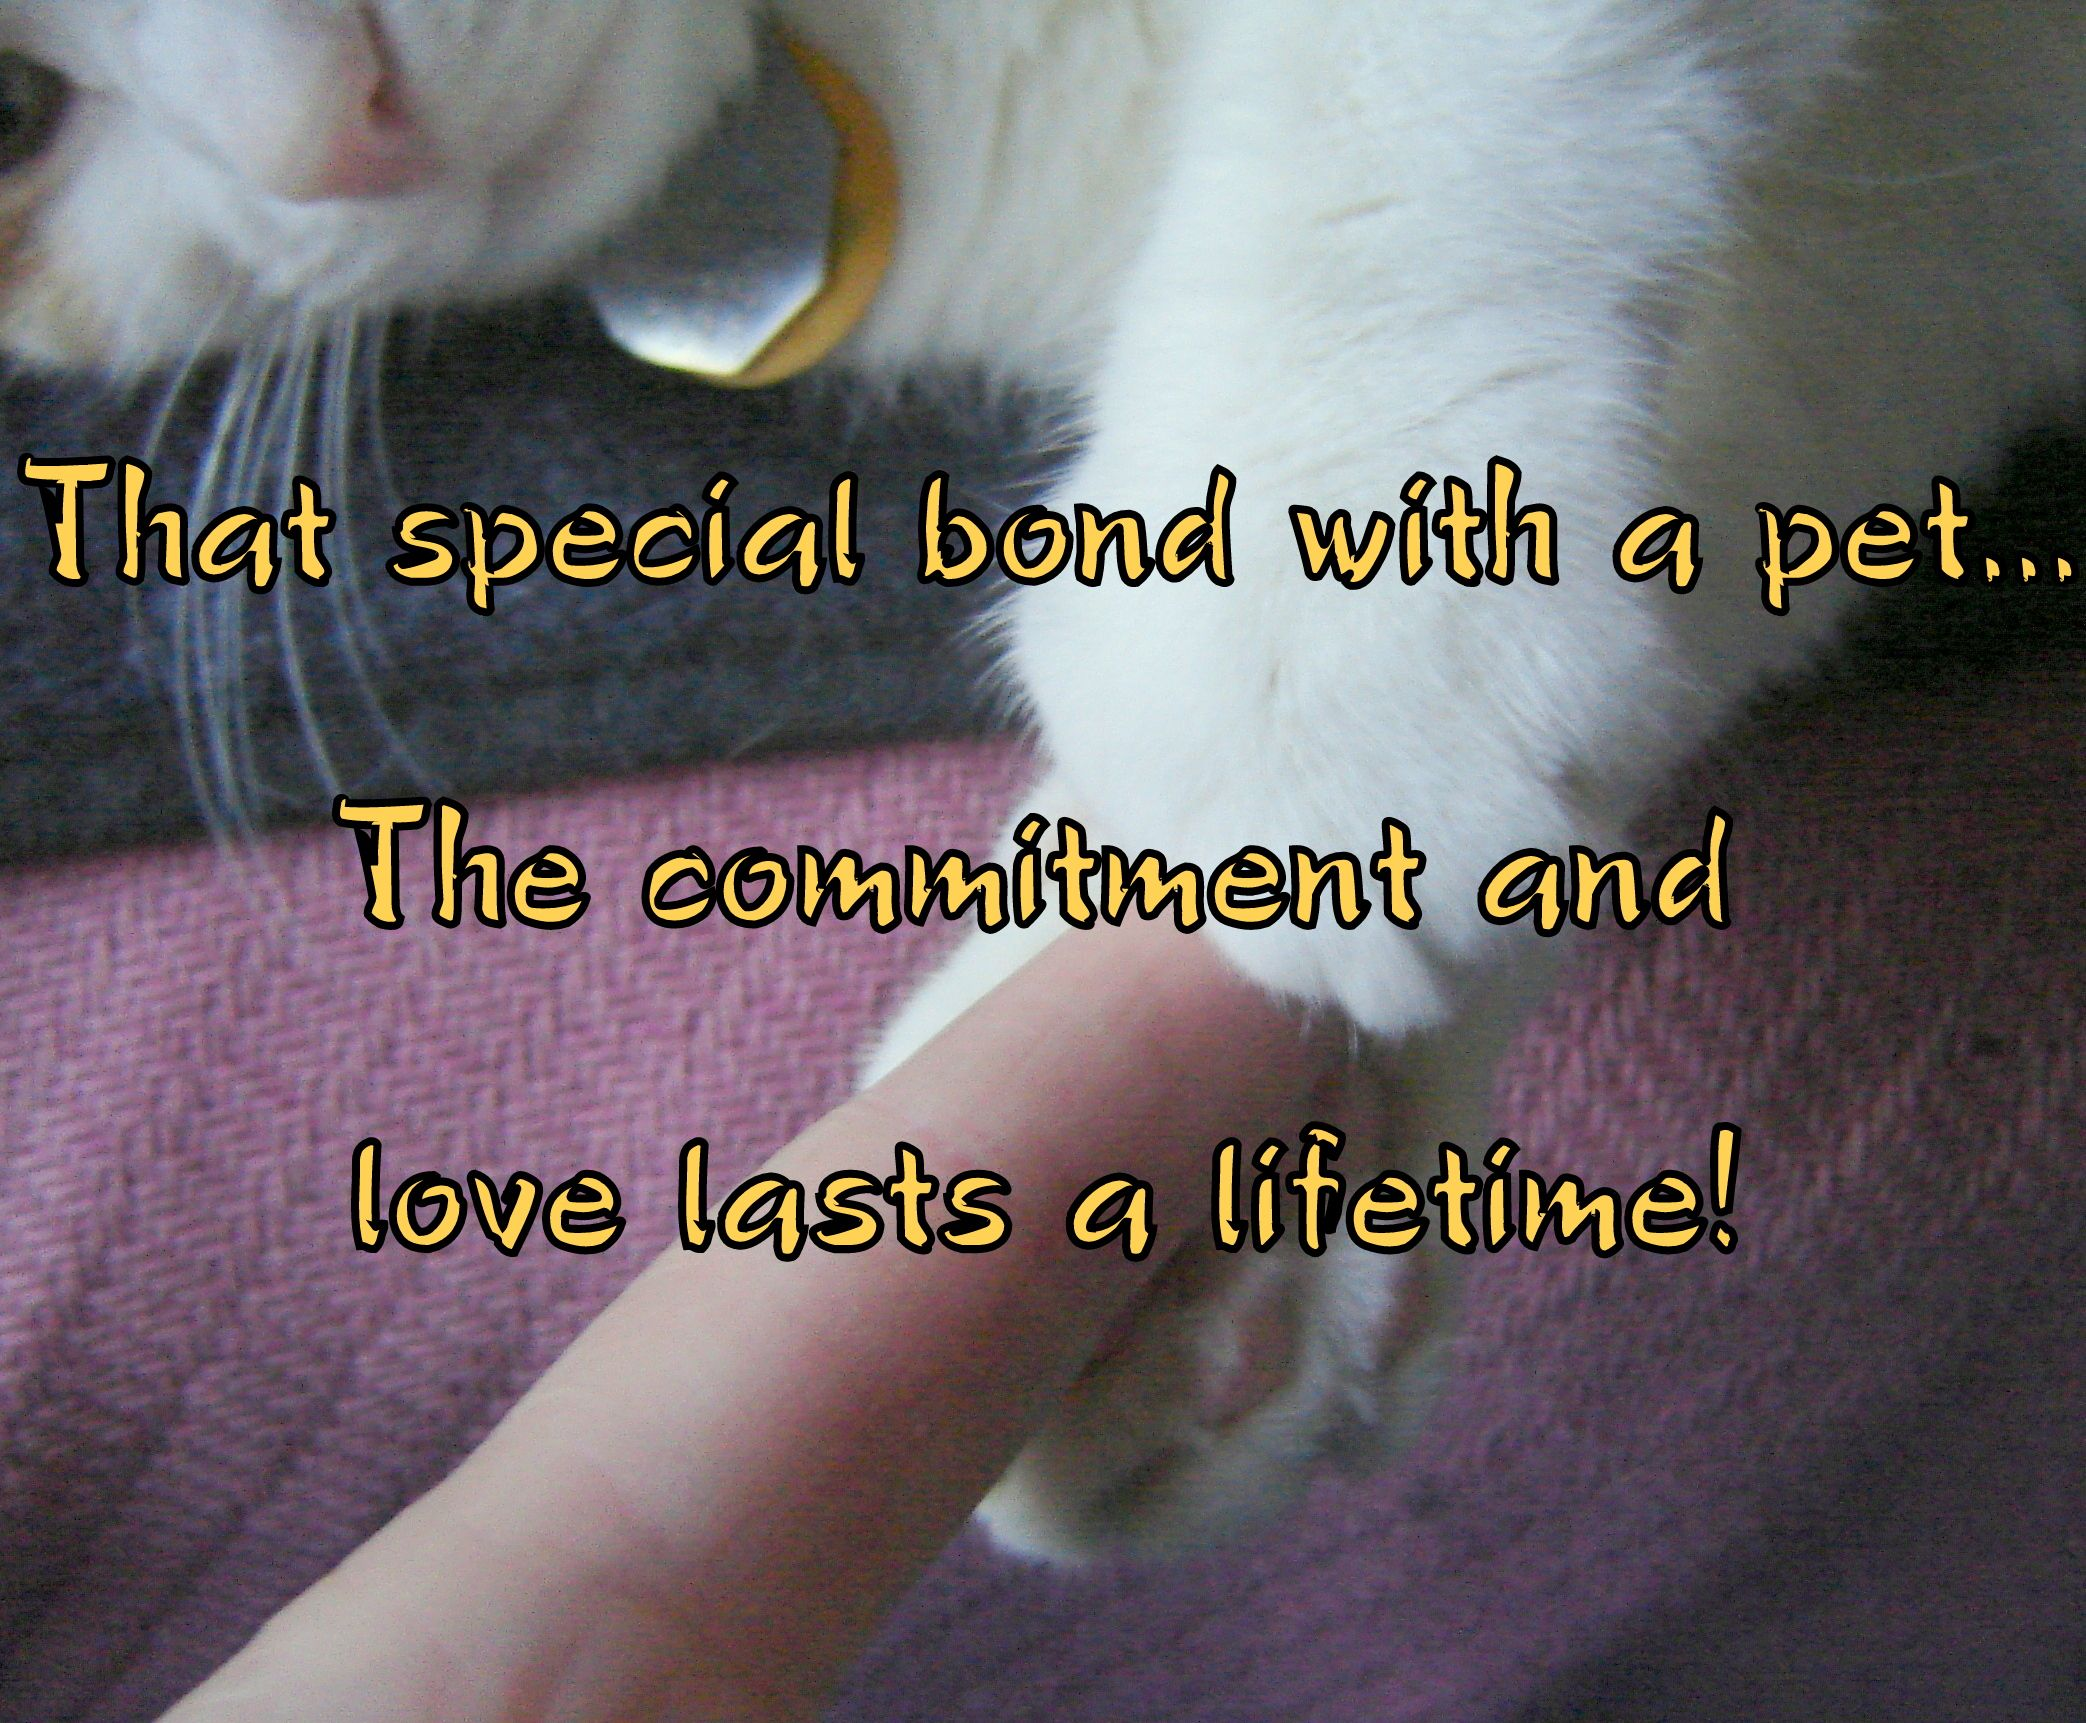 Special Bond with a Pet -commitment & love lasts a lifetime! -Made with photo of my furkid Bonney holding my finger in her paws :) -- furkid, feline cat, paws holding finger, hold on, committed, bonded, sweet, special, love lasts, kitty, furry love, friendship, companionship, caring, pet parent, cat mom, cat lover, meme.